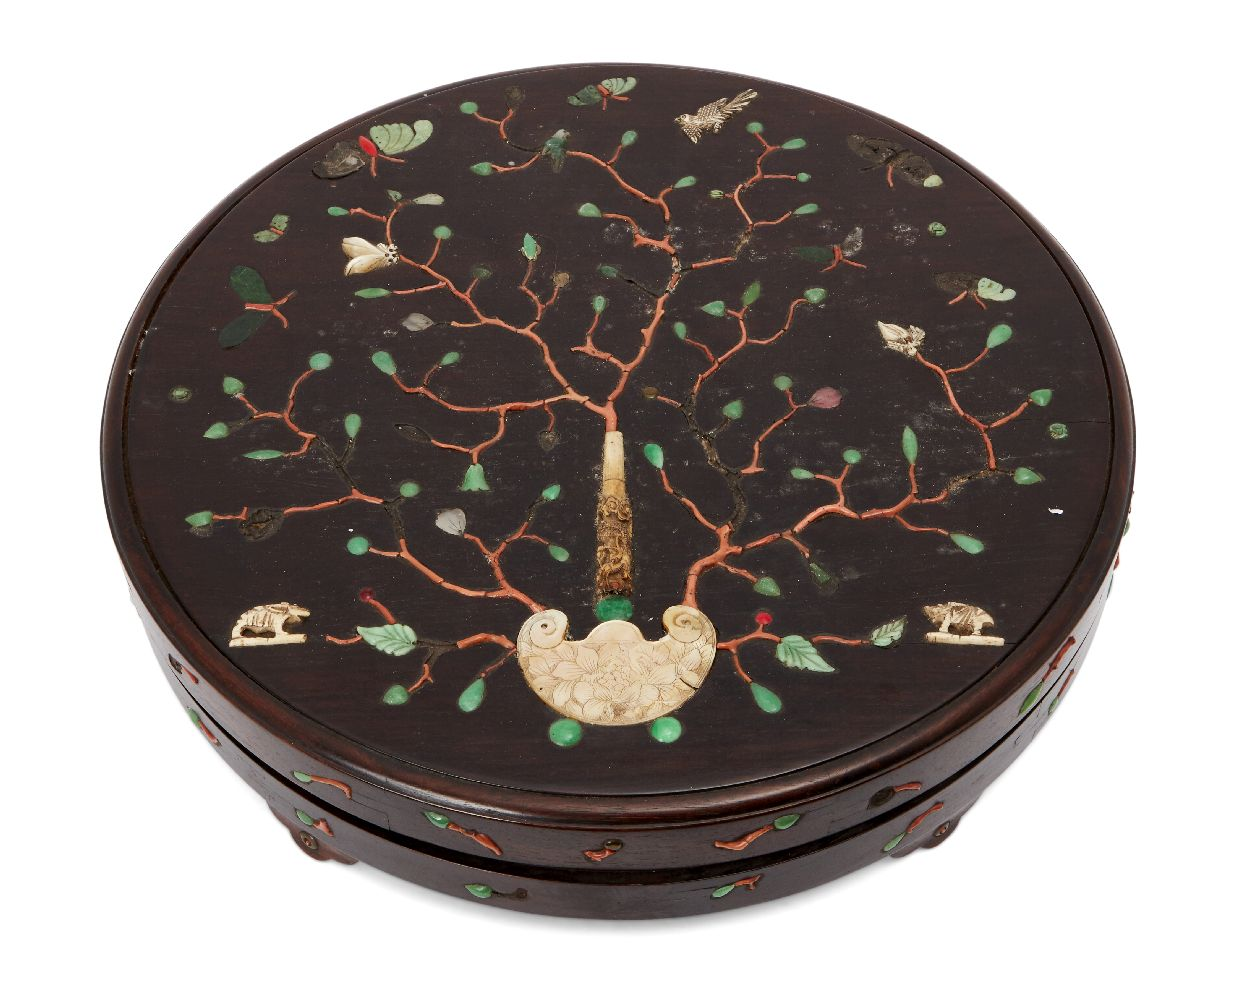 A Chinese hardwood circular box and cover, 18th century, inlaid with a carved ivory handle issuing